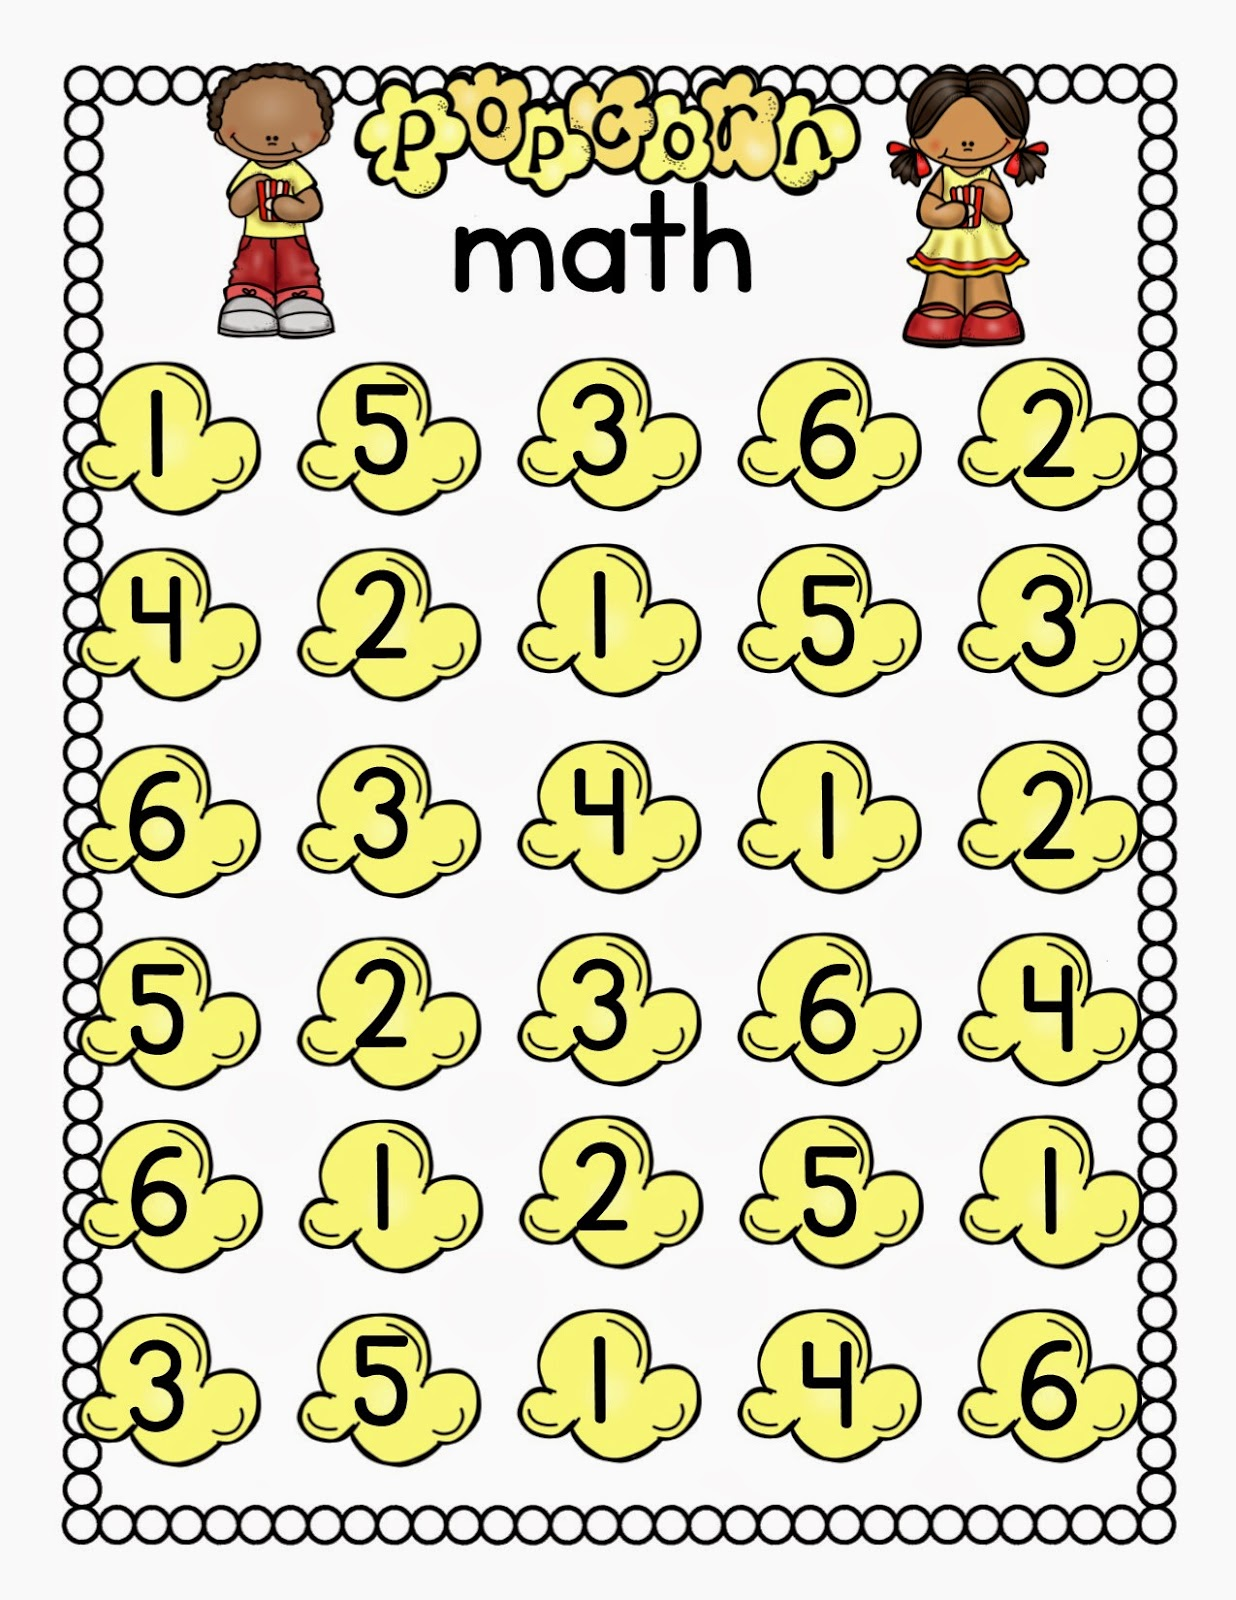 https://www.teacherspayteachers.com/Product/Math-Game-1372666